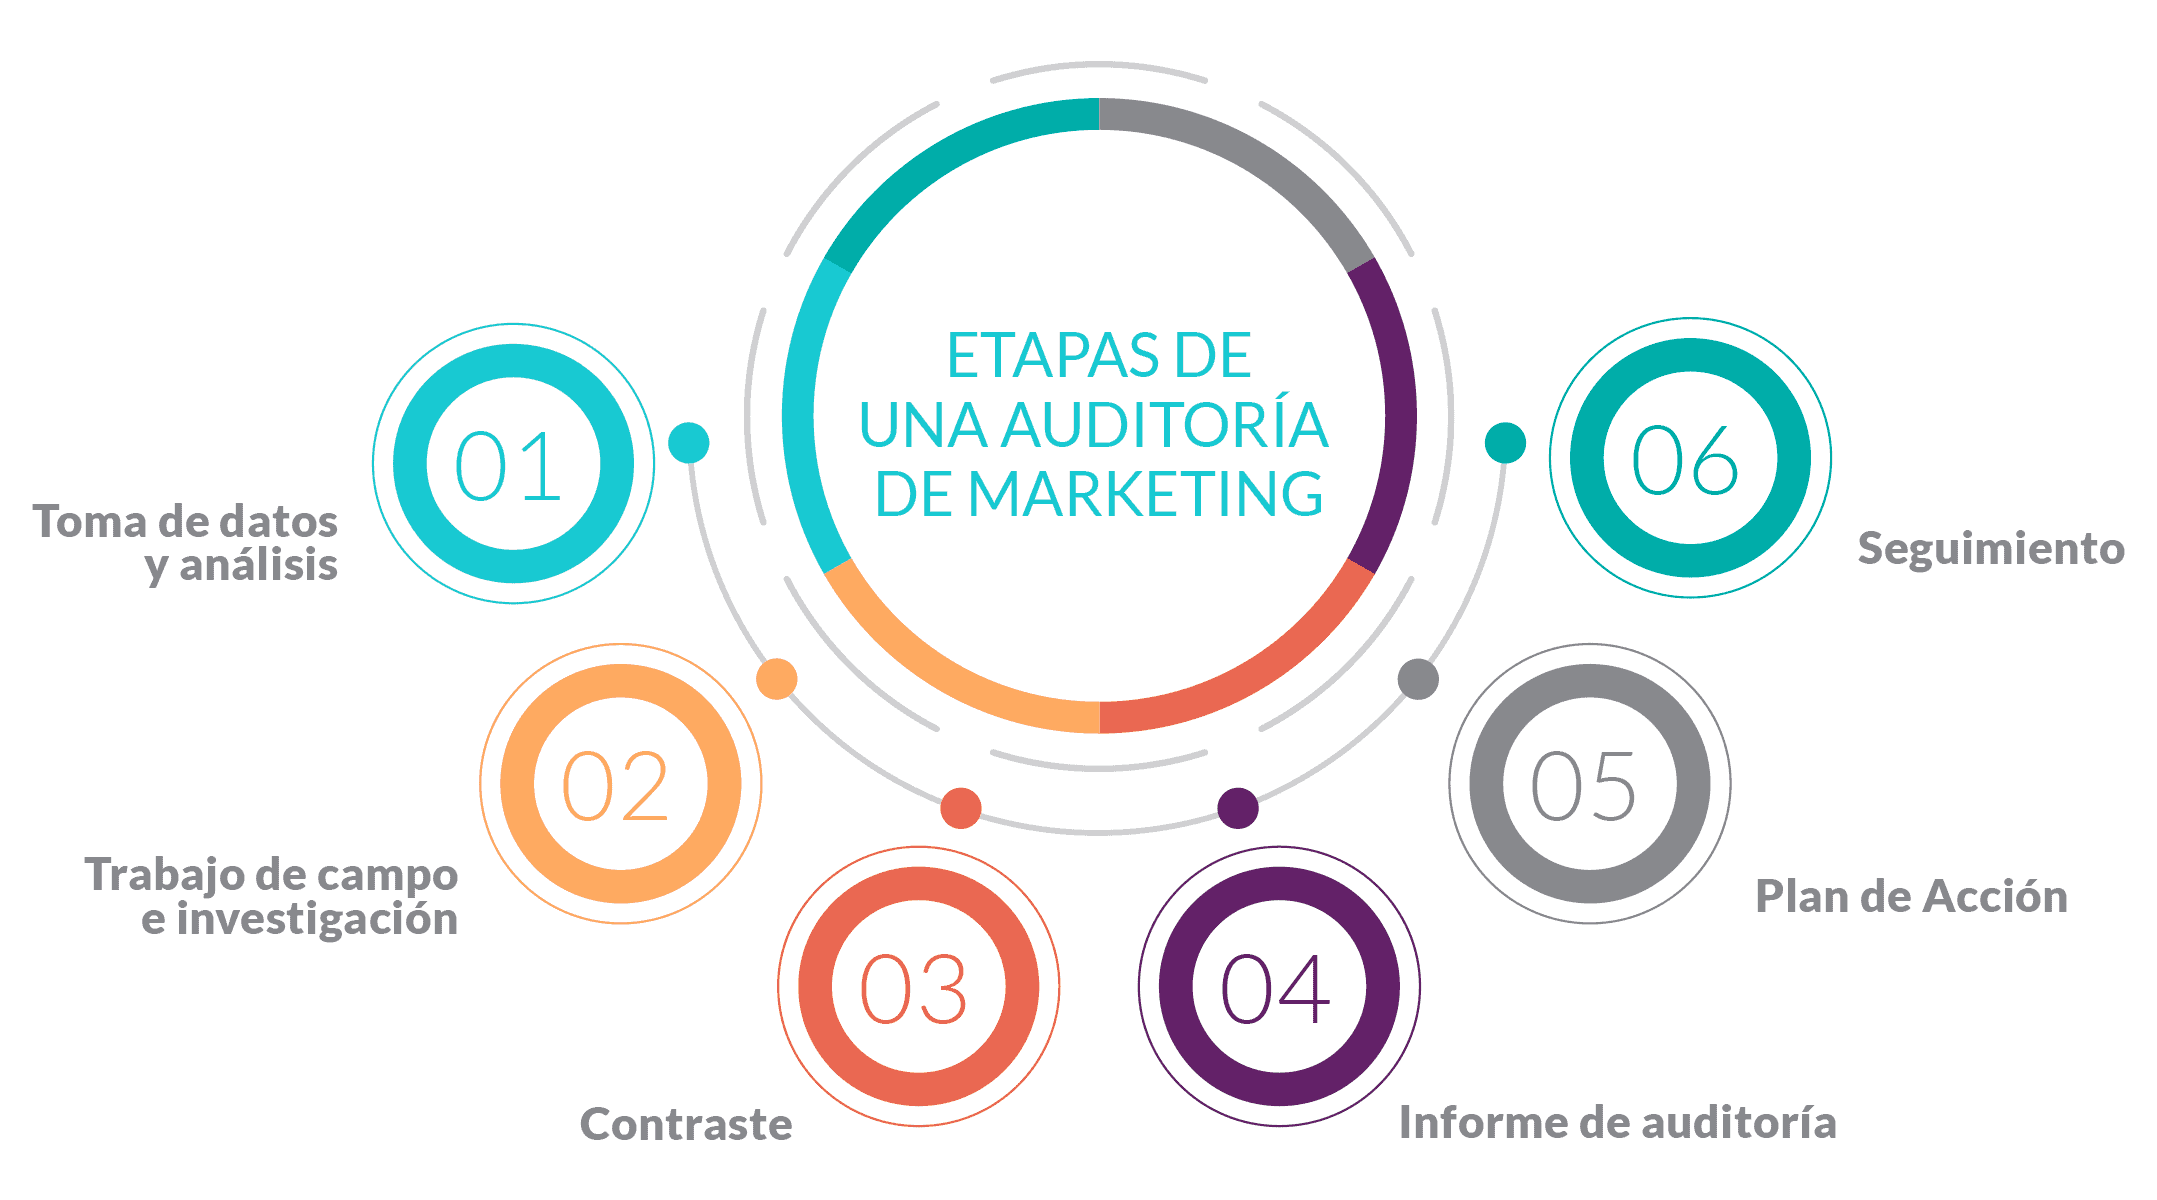 gráfica de las etapas de una auditoría de marketing en servicios de auditoria de marketing